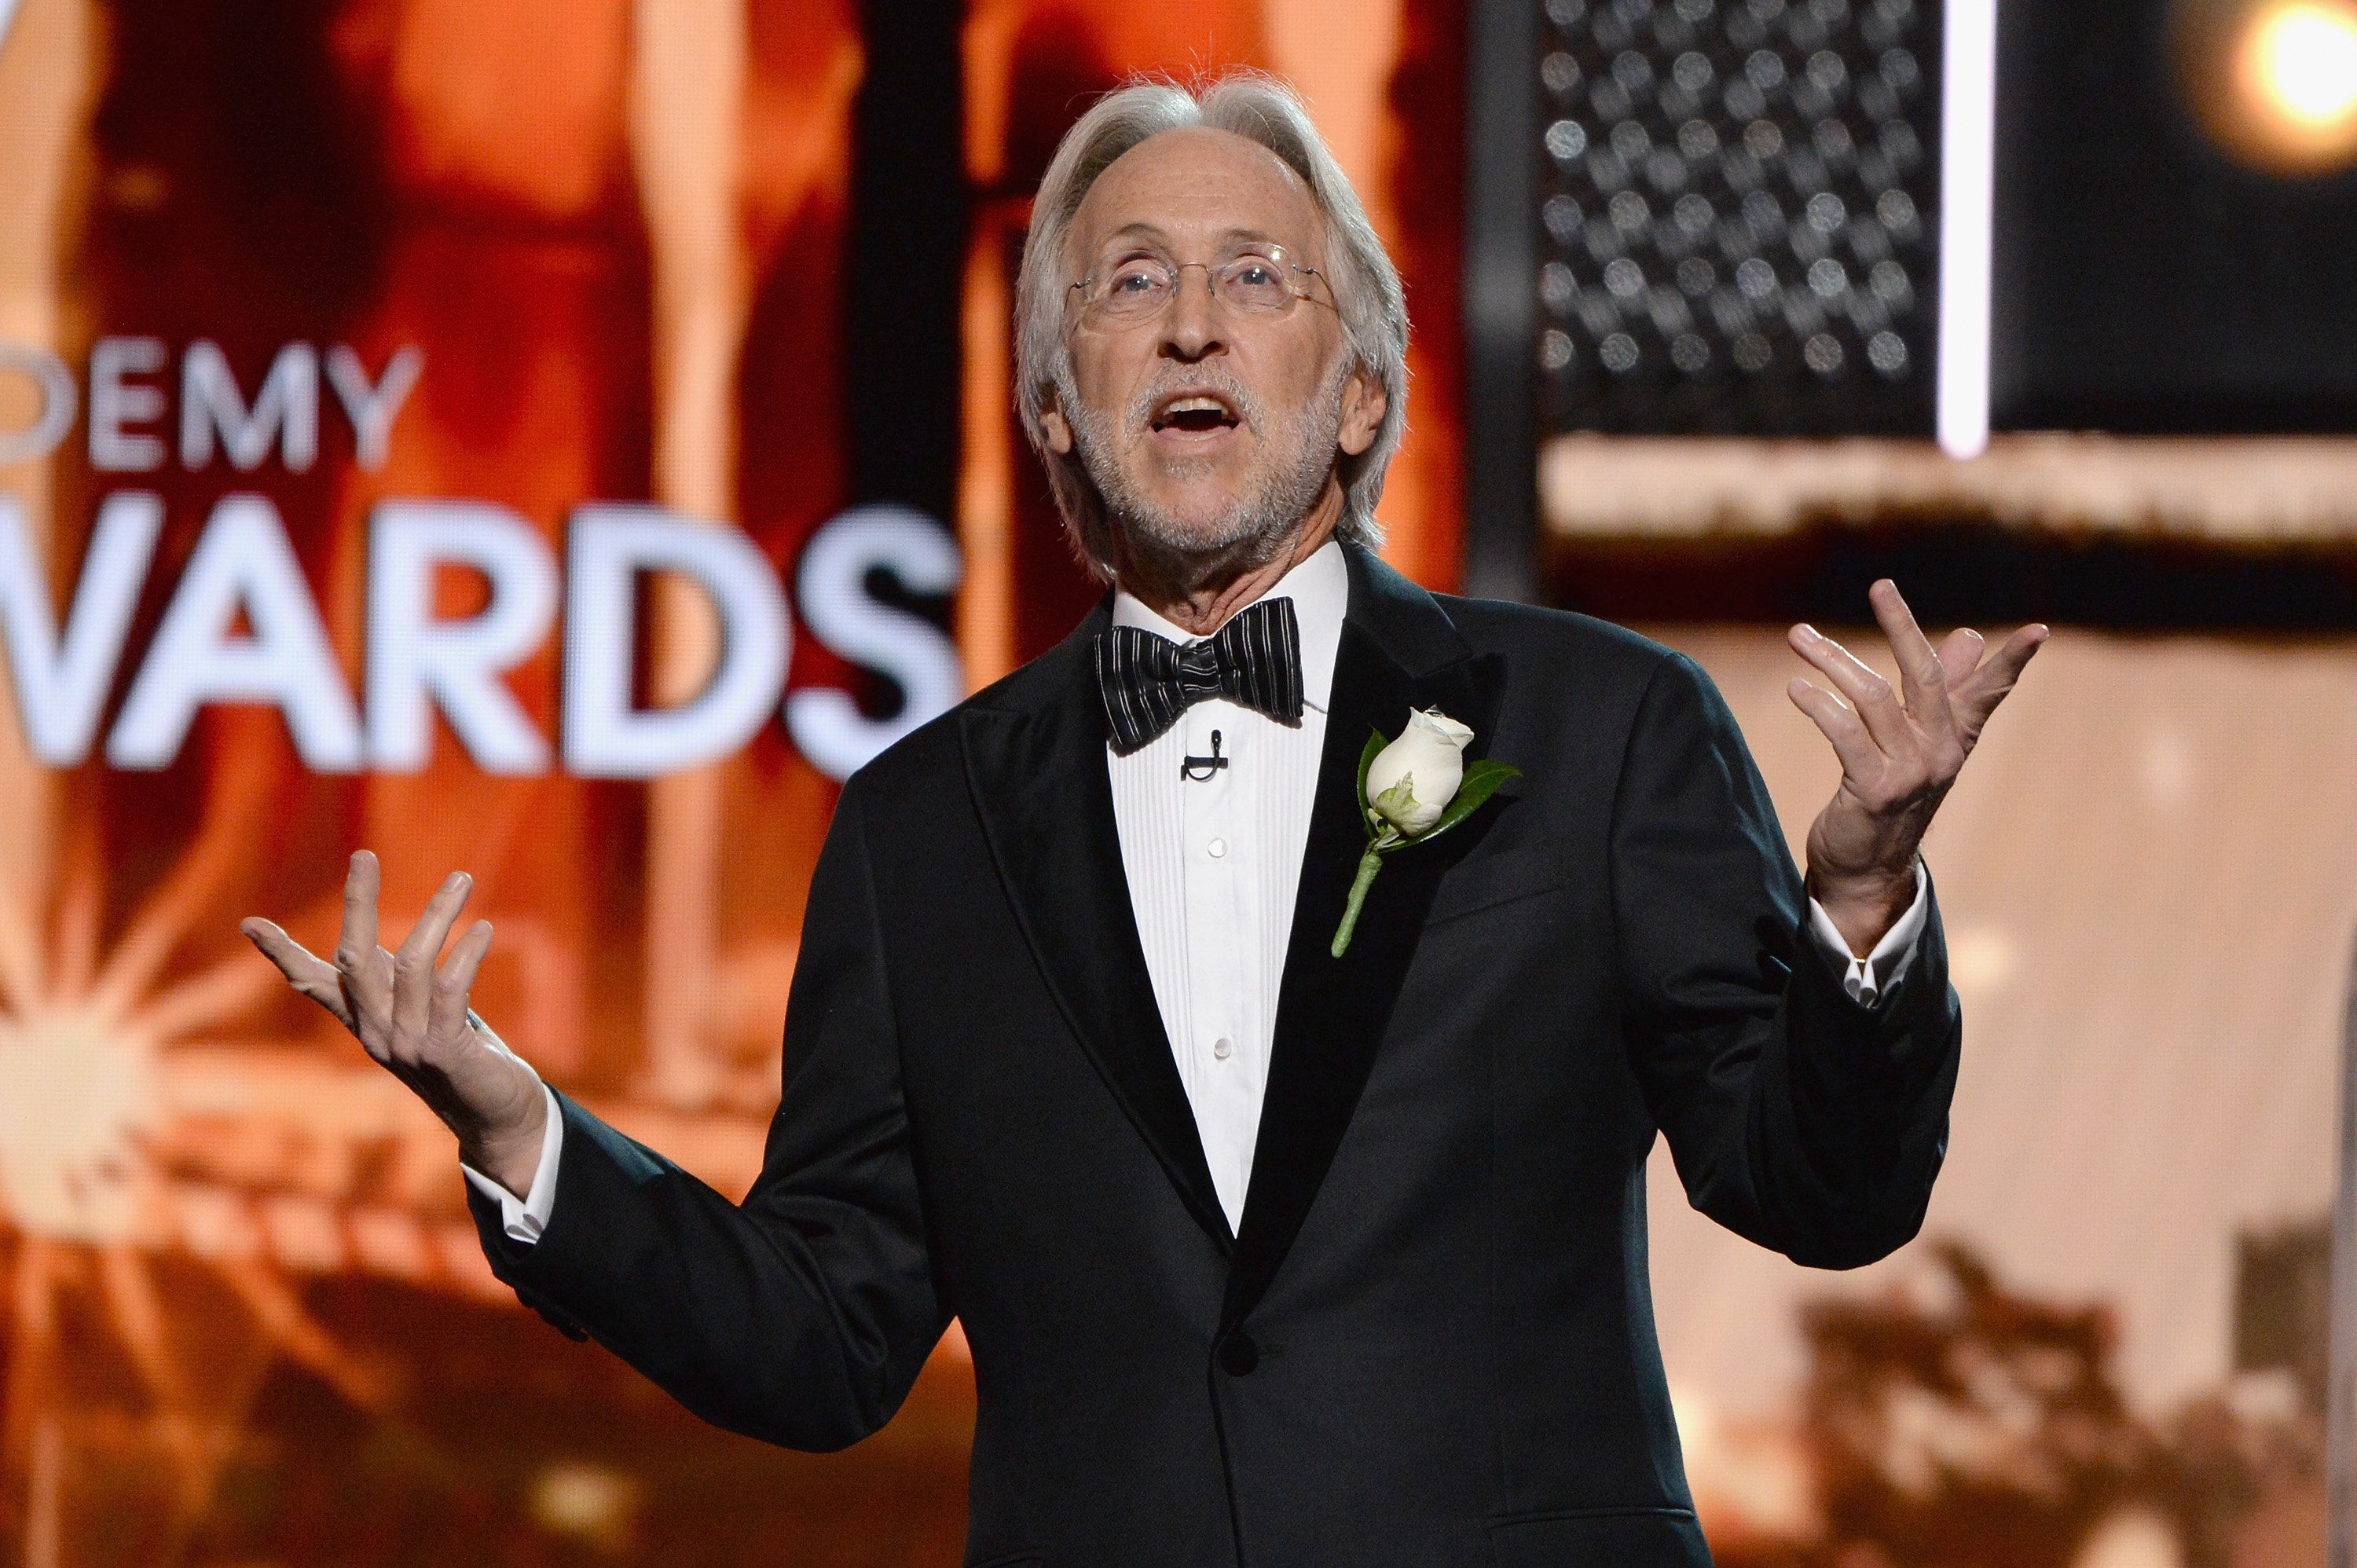 NEW YORK, NY - JANUARY 28:  The Recording Academy and MusiCares President/CEO Neil Portnow speaks onstage during the 60th Annual GRAMMY Awards at Madison Square Garden on January 28, 2018 in New York City.  (Photo by Michael Kovac/Getty Images for NARAS)